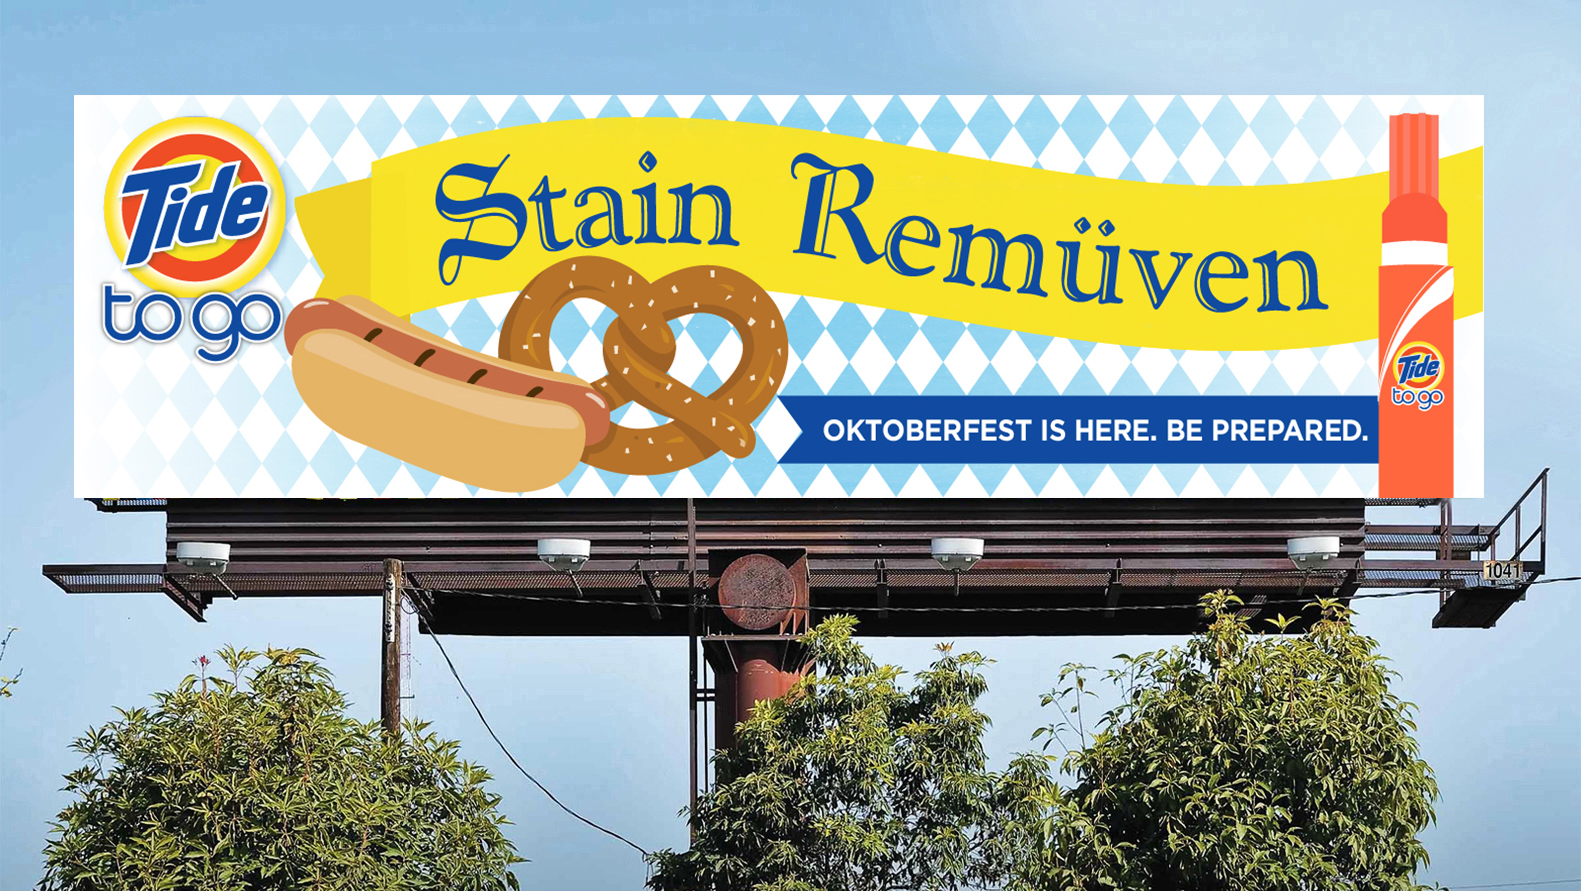 Option 2 for Octoberfest - highlighting common foods that may cause stains and tying in the Bavarian pattern.